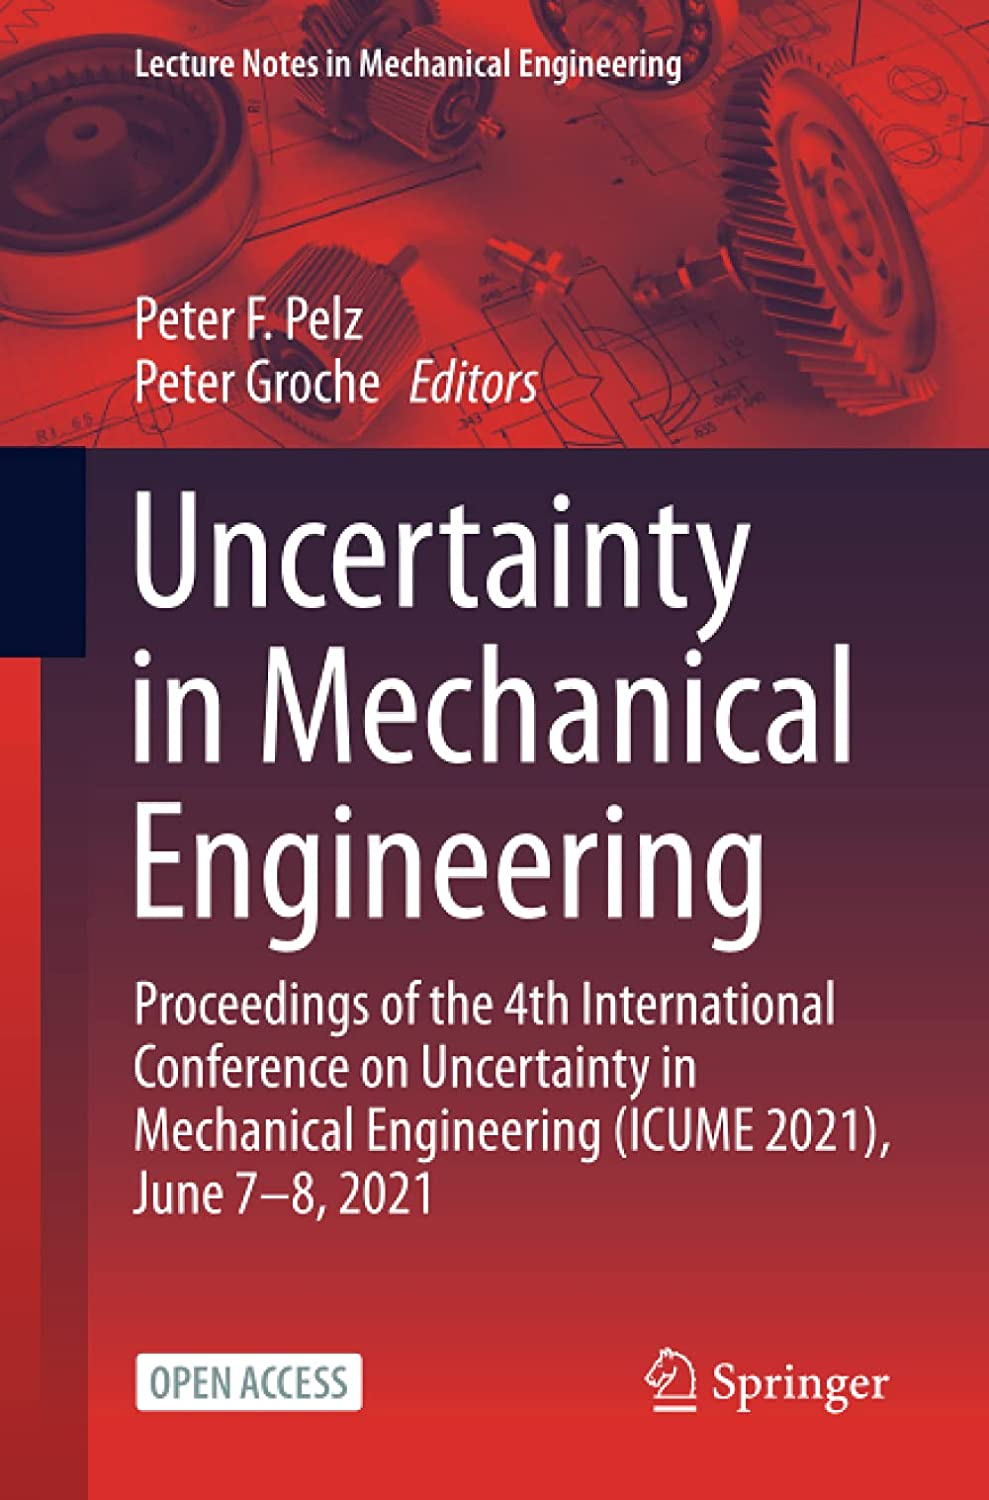 Uncertainty in Mechanical Engineering: Proceedings of the 4th International Conference on Uncertainty in Mechanical Engineering (ICUME 2021), June 7–8, 2021 (Lecture Notes in Mechanical Engineering)